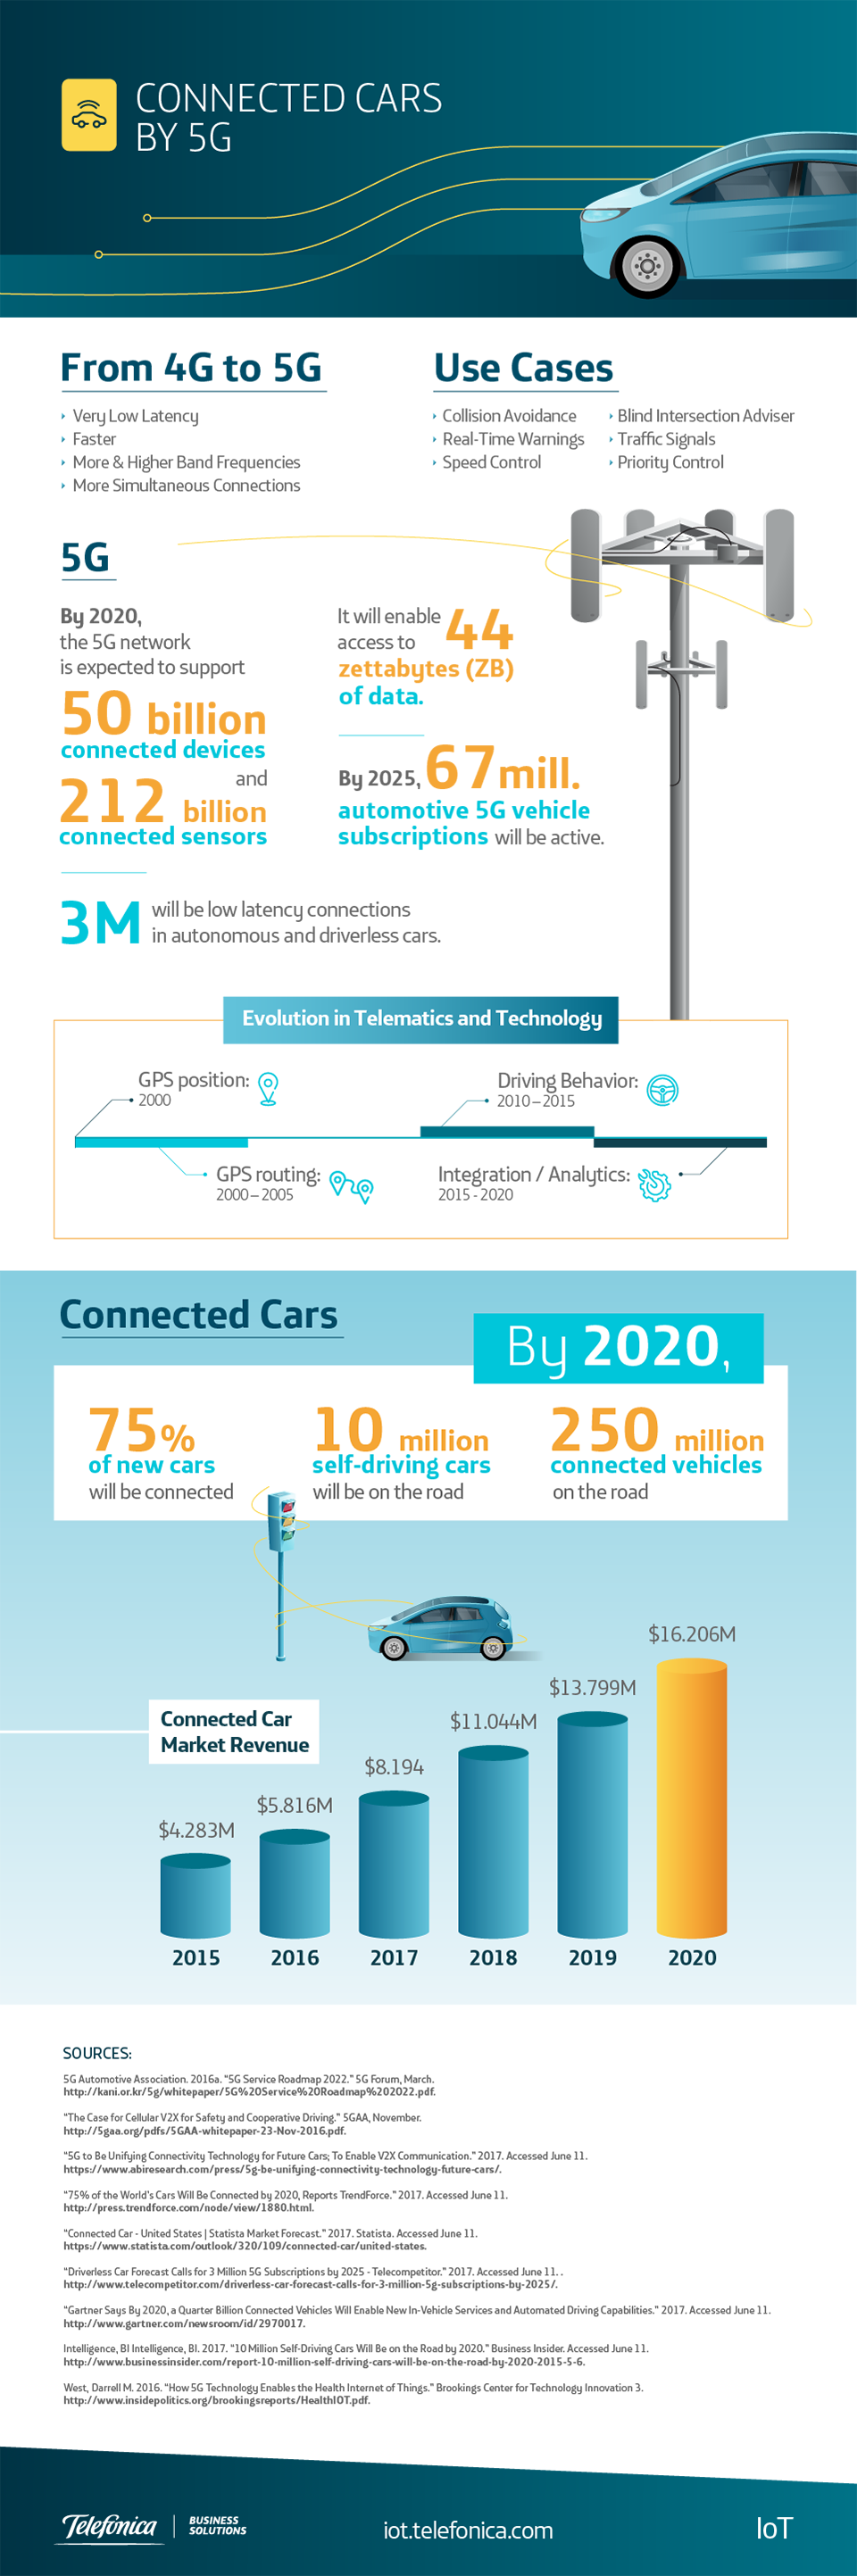 Connected Cars by 5G